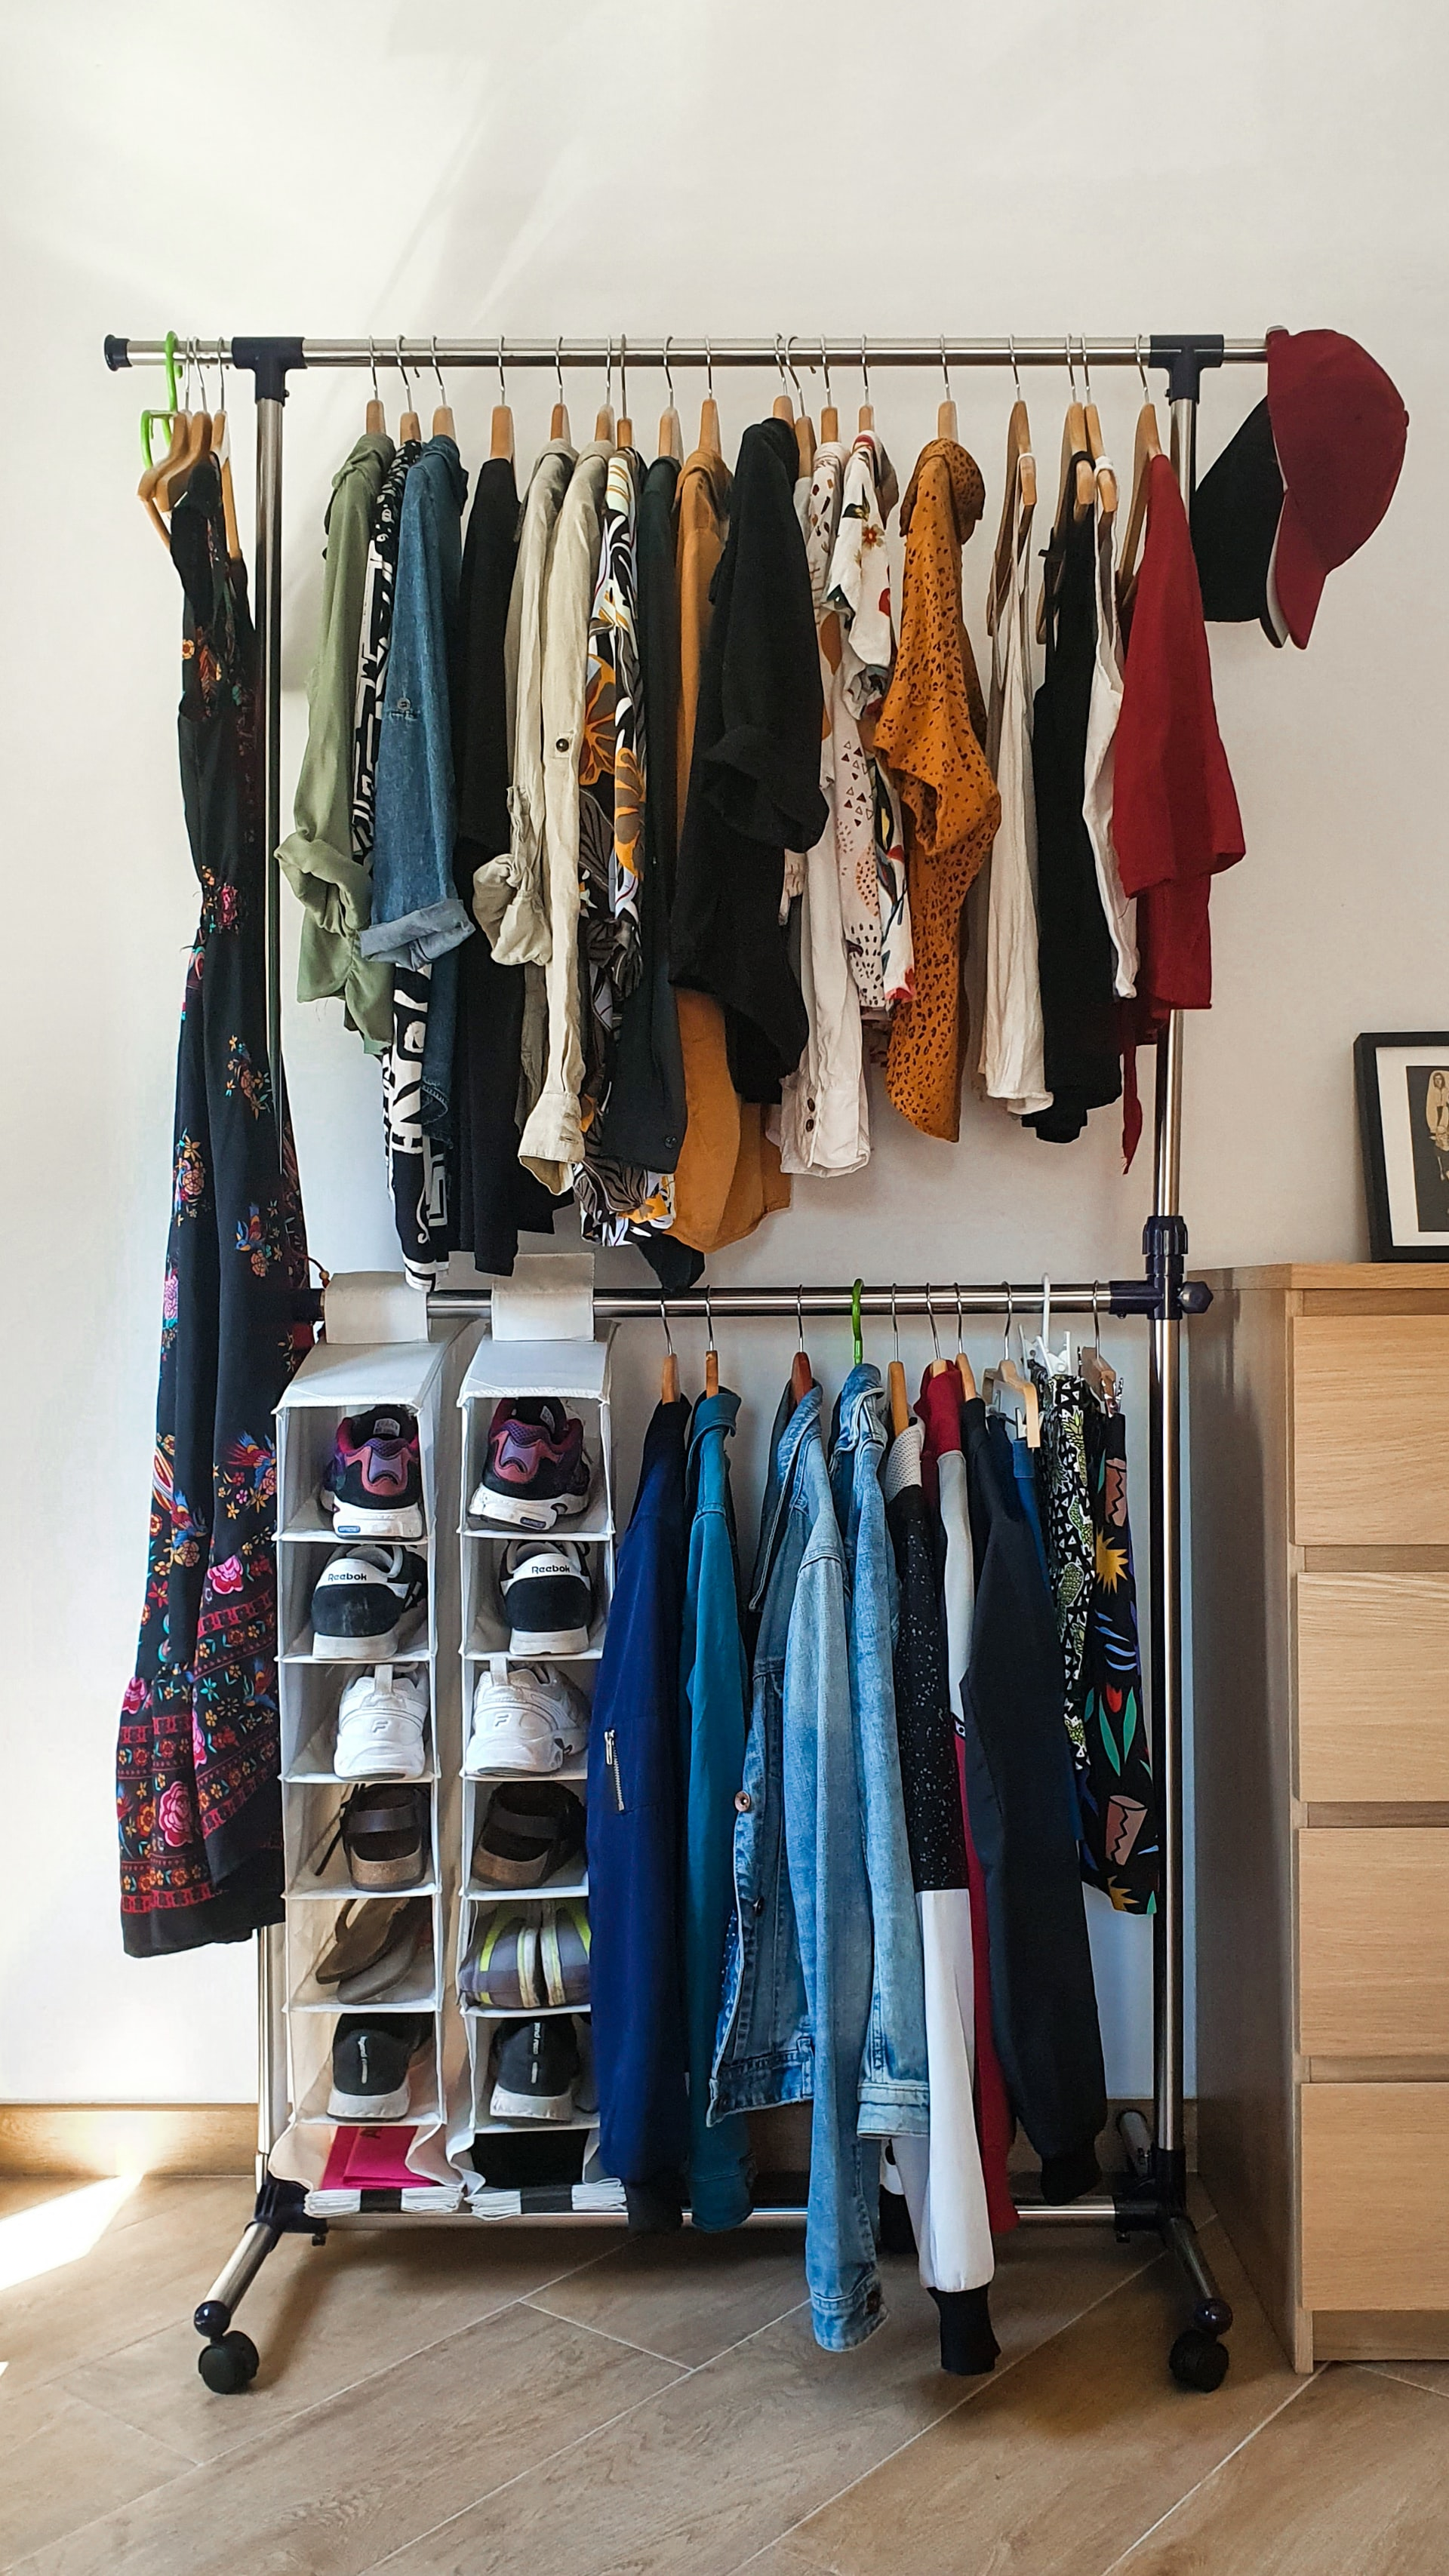 Top Tips For Organising Your Wardrobe